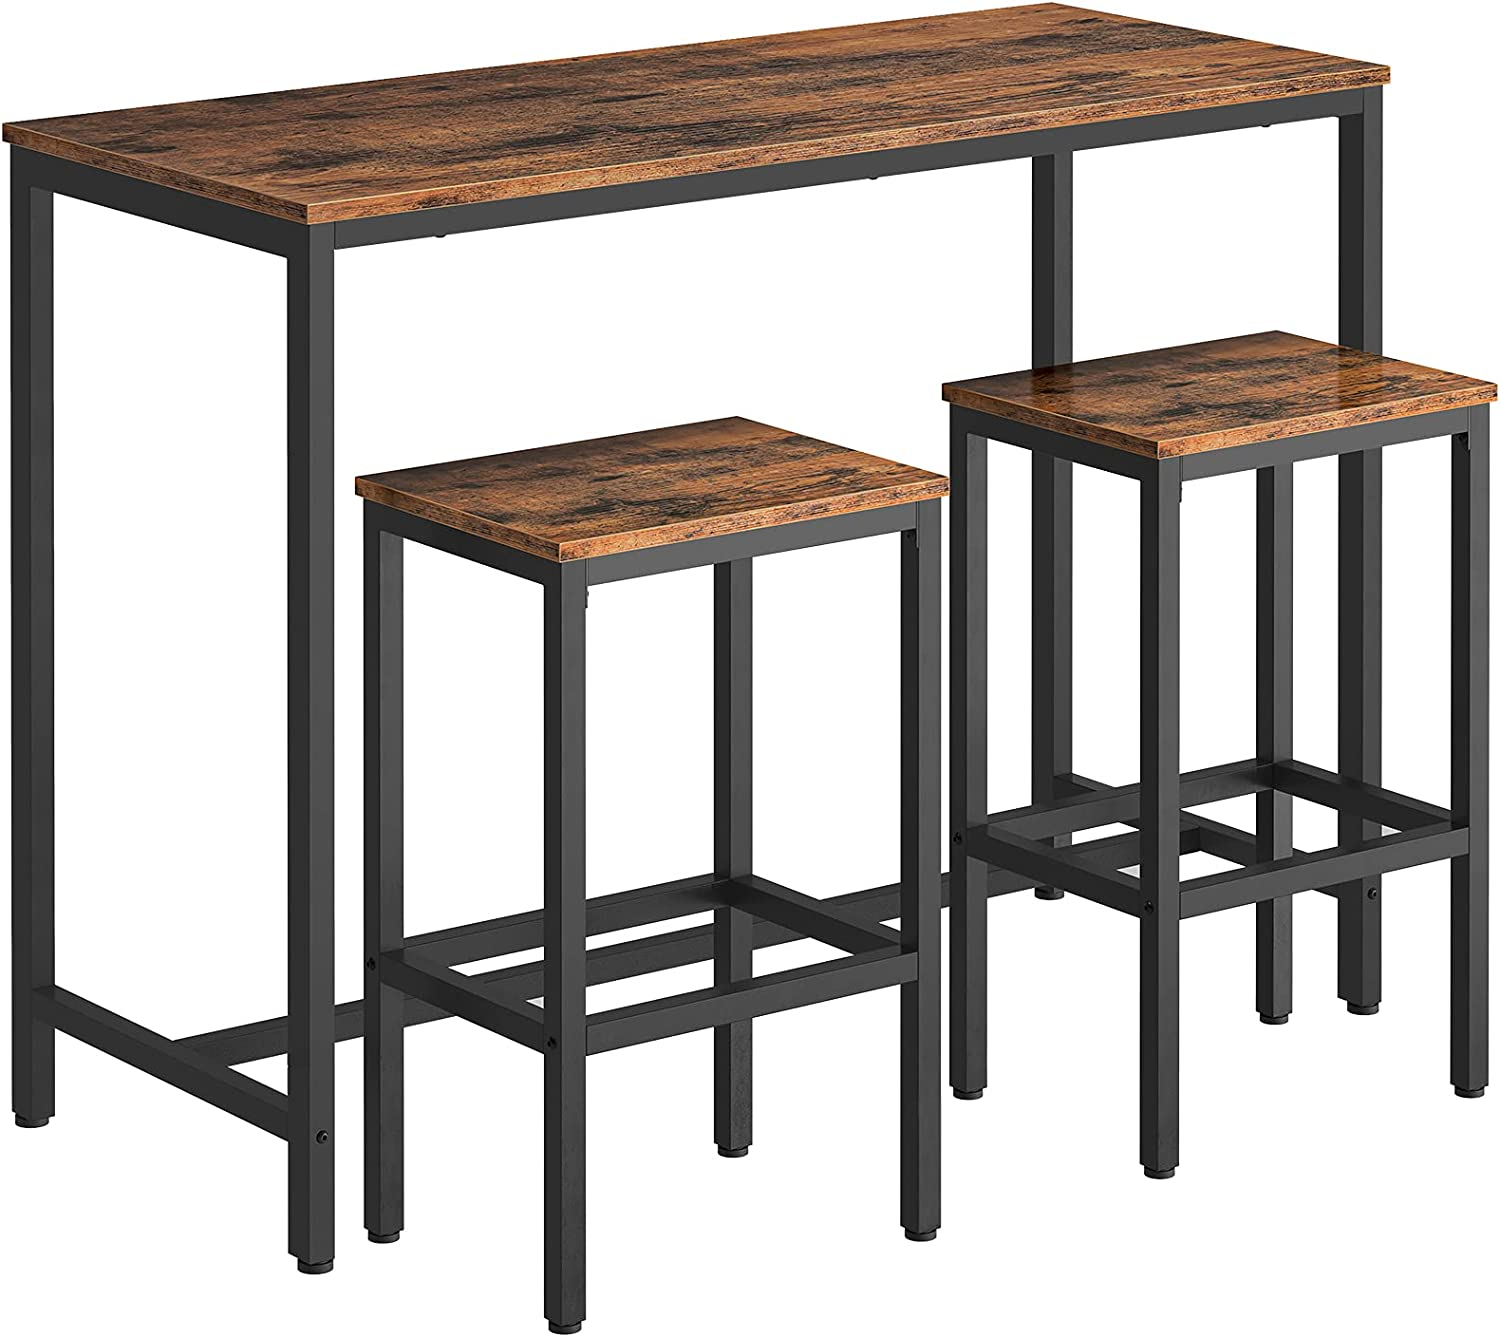 HOOBRO Bar Table Set, Bar Table with Bar Stool, Table and Stool Can Be Used  Separately, Kitchen Counter, Metal Frame, 9 x 9 x 9 cm, for Kitchen, ...